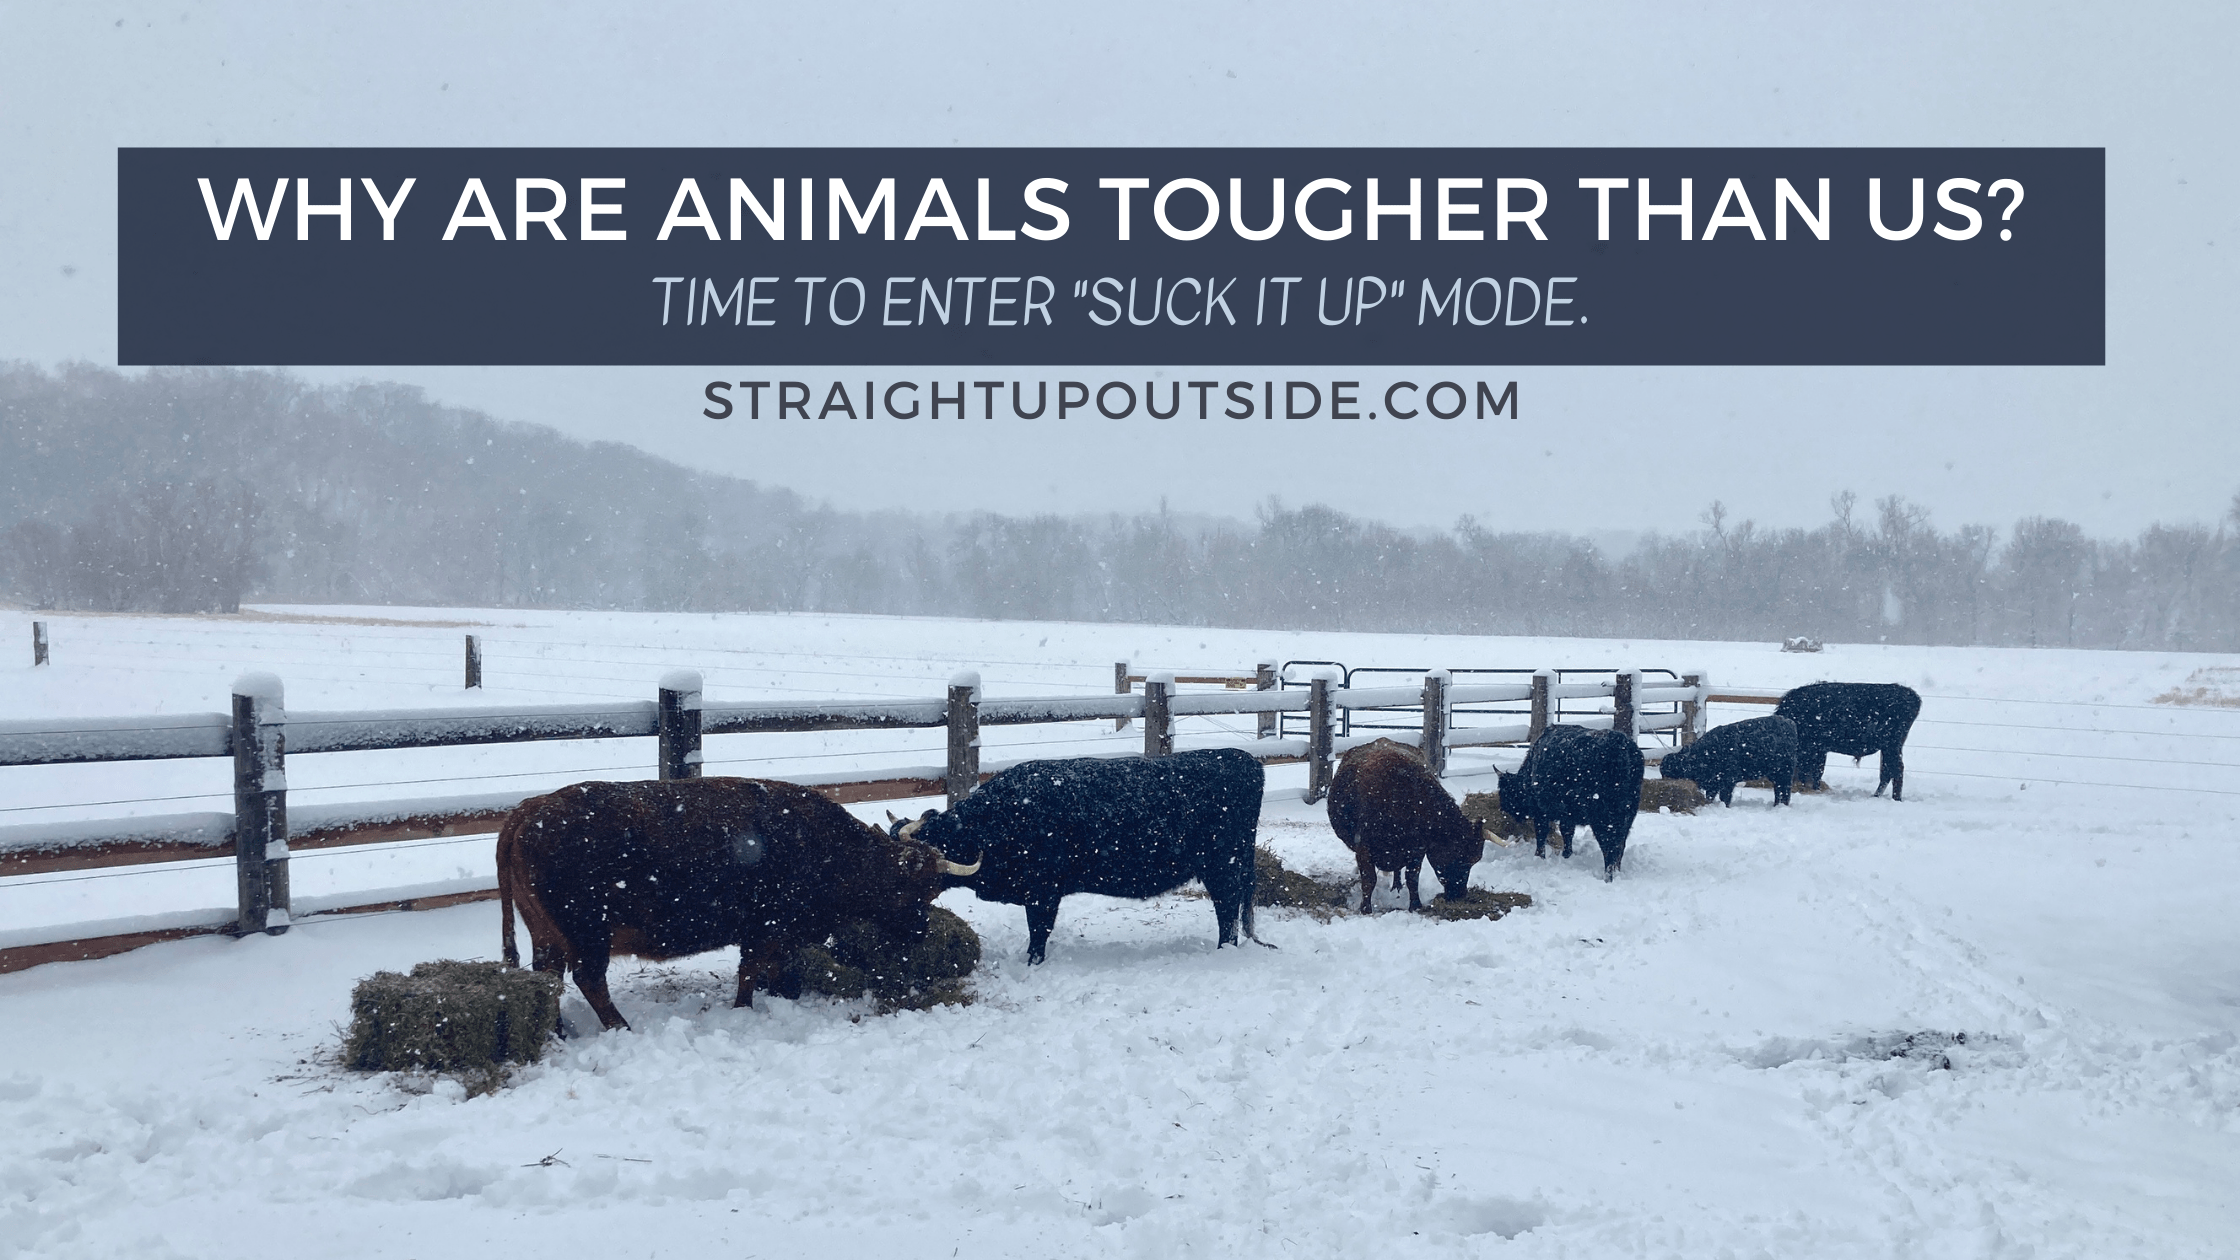 Why Are Animals Tougher Than Us?